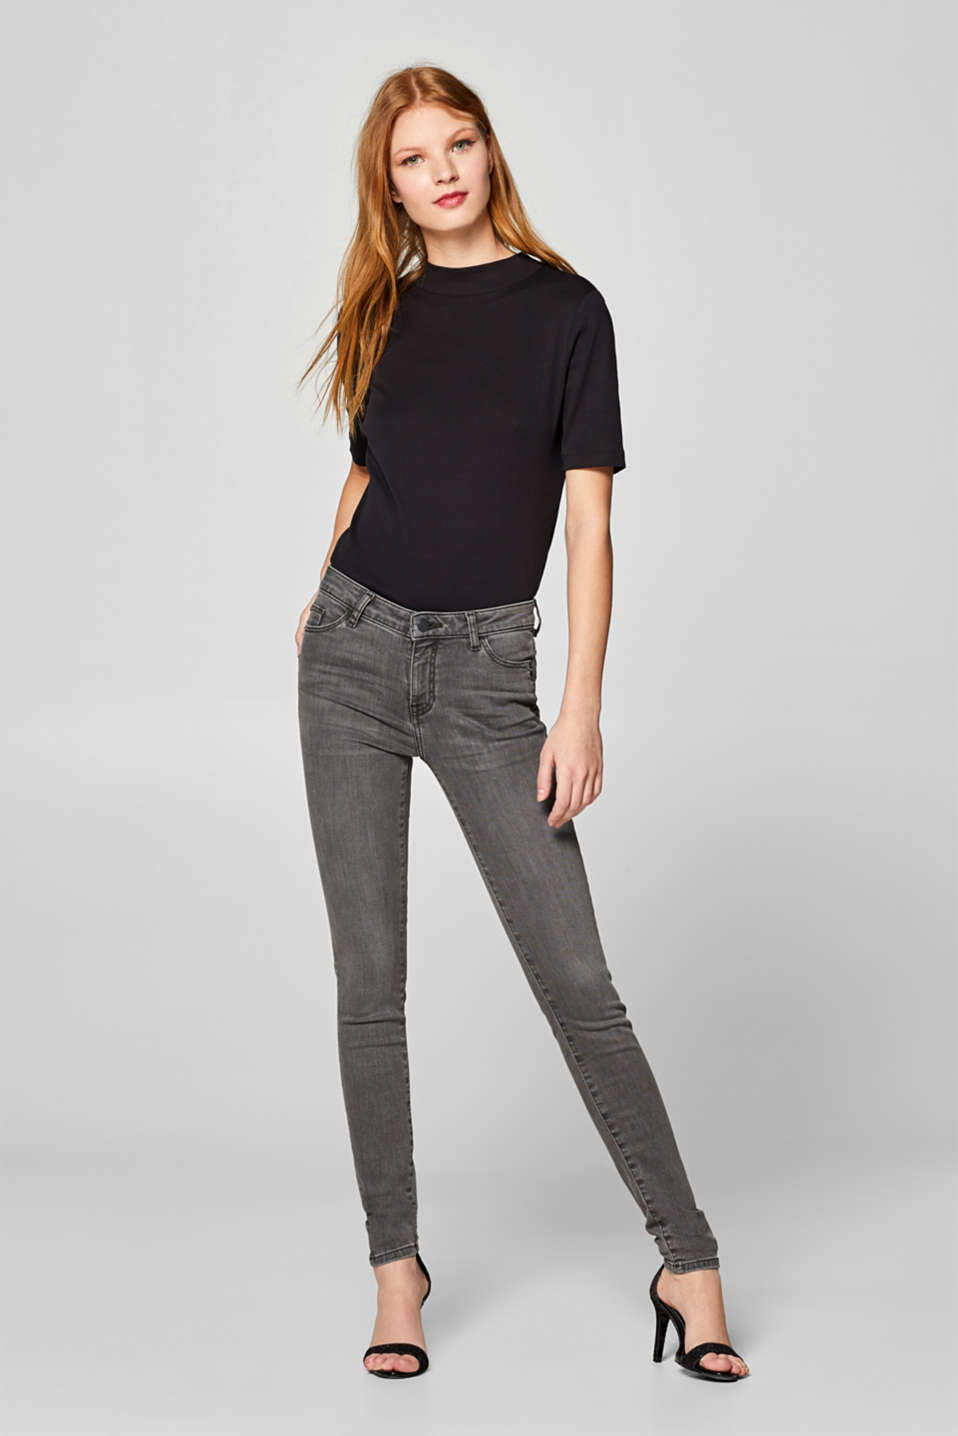 Esprit - Shaping-Jeans in grauer Waschung